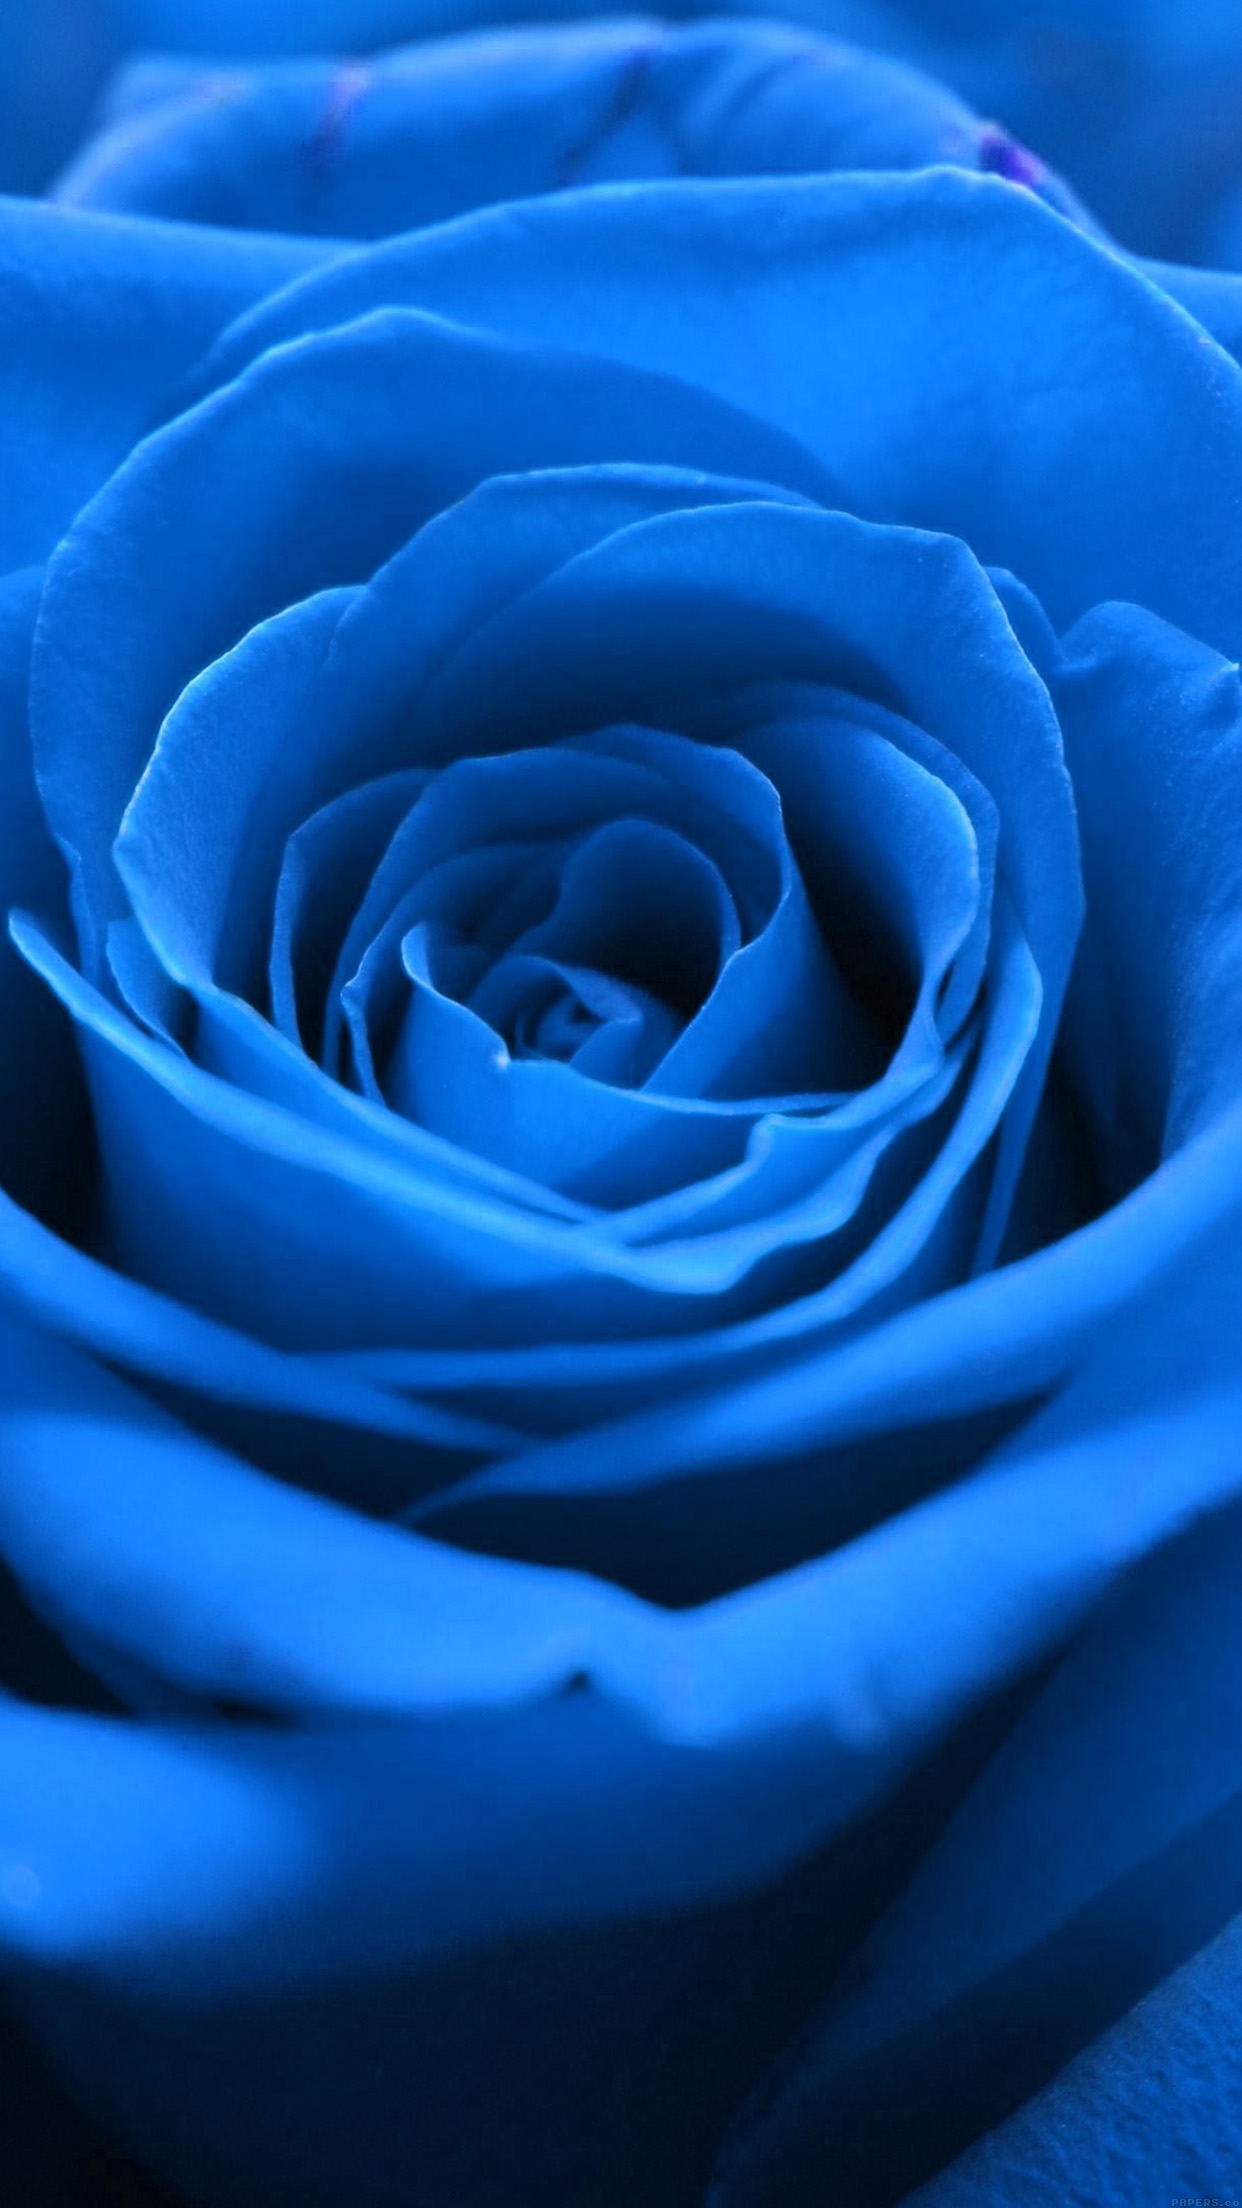 iphonexpapers - ml59-rose-flower-blue-nature